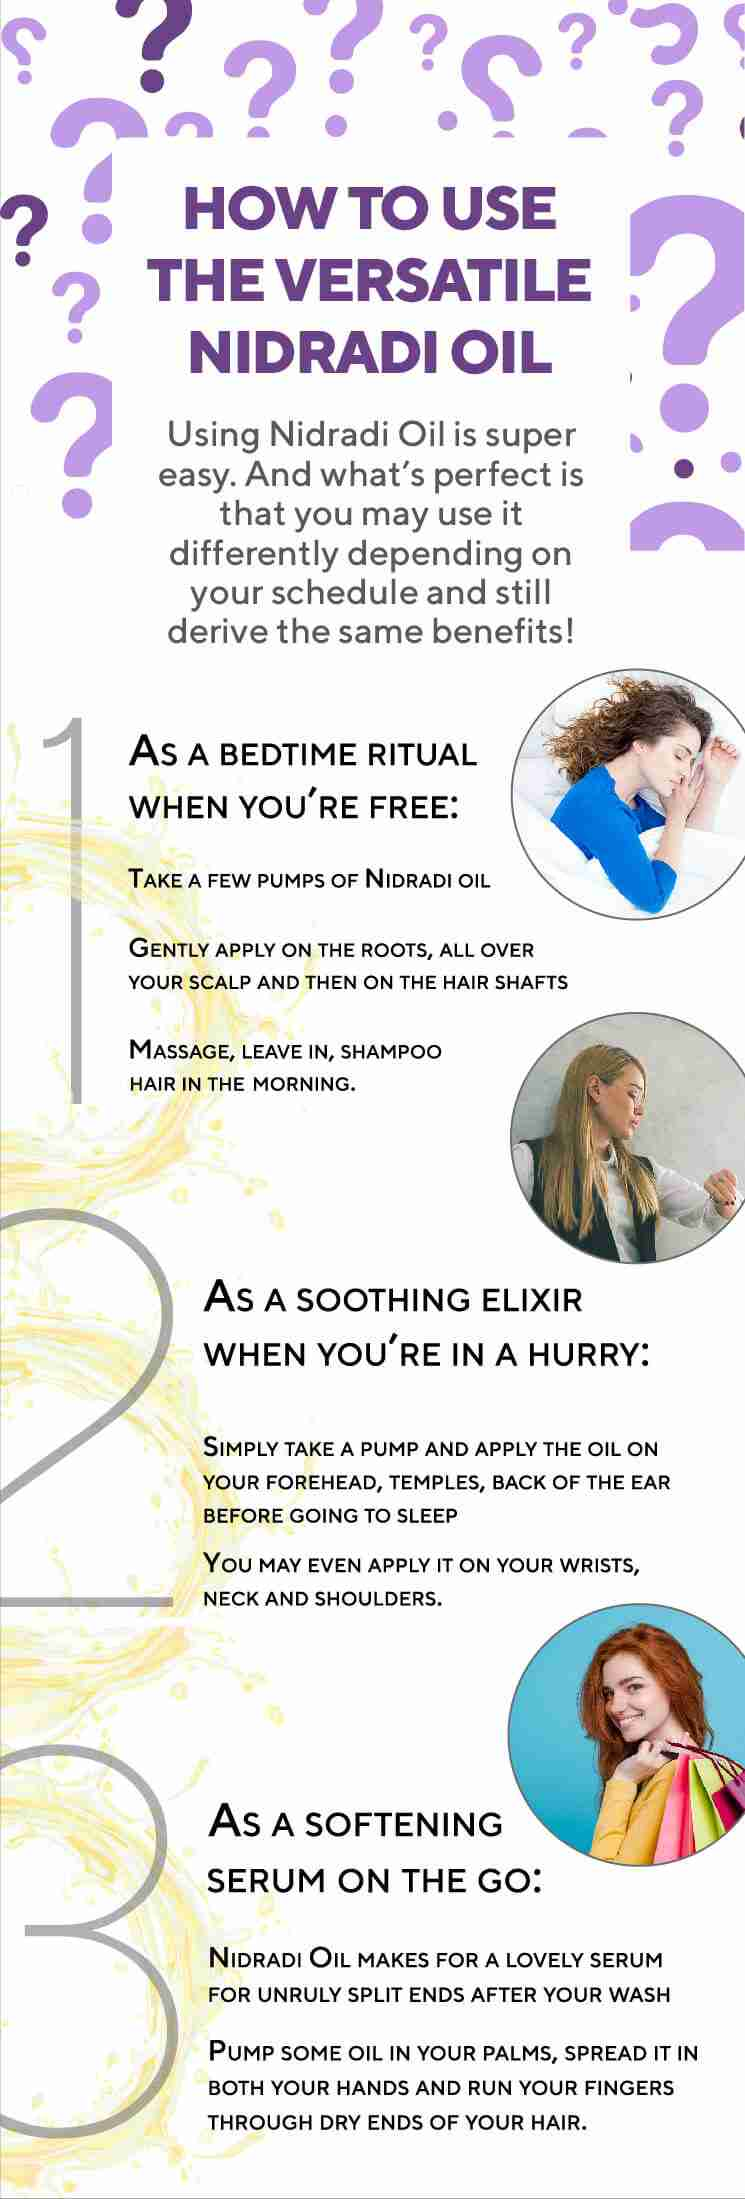 HOW TO USE THE VERSATILE NIDRADI OIL 1. As a bedtime ritual when you're free: • Take a few pumps of Nidradi oil • Gently apply on the roots, all over your scalp and then on the hair shafts • Massage, leave in, shampoo hair in the morning. 2. As a soothing elixir when you're in a hurry: • Simply take a pump and apply the oil on your forehead, temples, back of the ear before going to sleep • You may even apply it on your wrists, neck and shoulders. 3. As a softening serum on the go: Nidradi Oil makes for a lovely serum for unruly split ends after your wash • Pump some oil in your palms, spread it in both your hands and run your fingers through dry ends of your hair.